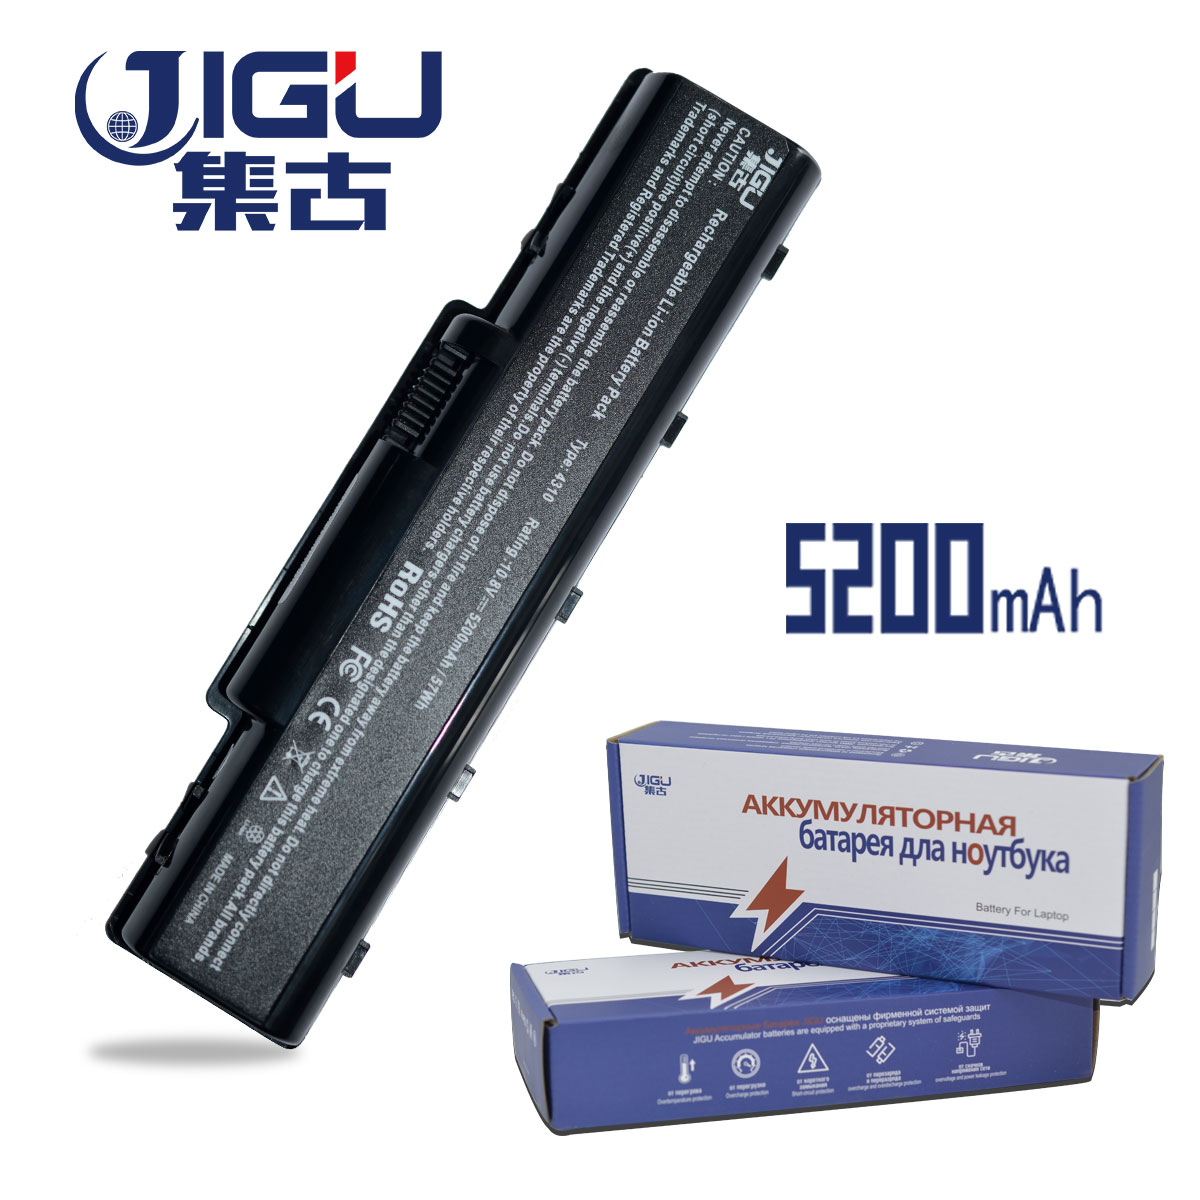 Jigu Laptop Battery For Acer As07a51 As07a75 Aspire 5738 5738g 5738z 5738zg As5740 2930 4310